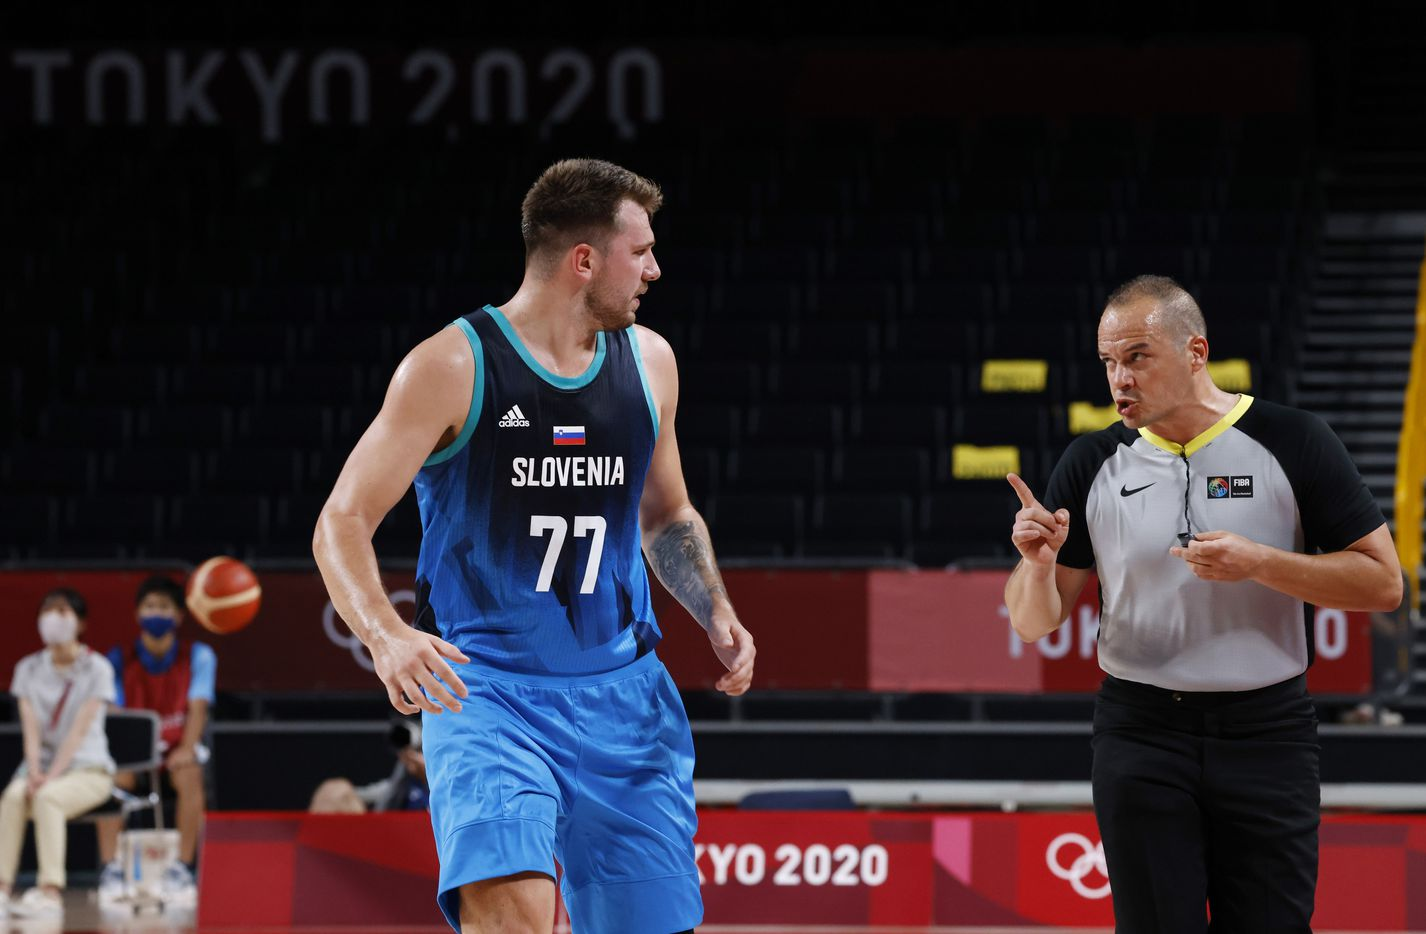 Slovenia's Luka Doncic (77) argues with an official in a game against Argentina in the first half of play during the postponed 2020 Tokyo Olympics at Saitama Super Arena on Monday, July 26, 2021, in Saitama, Japan. Slovenia defeated Argentina 118-100. (Vernon Bryant/The Dallas Morning News)